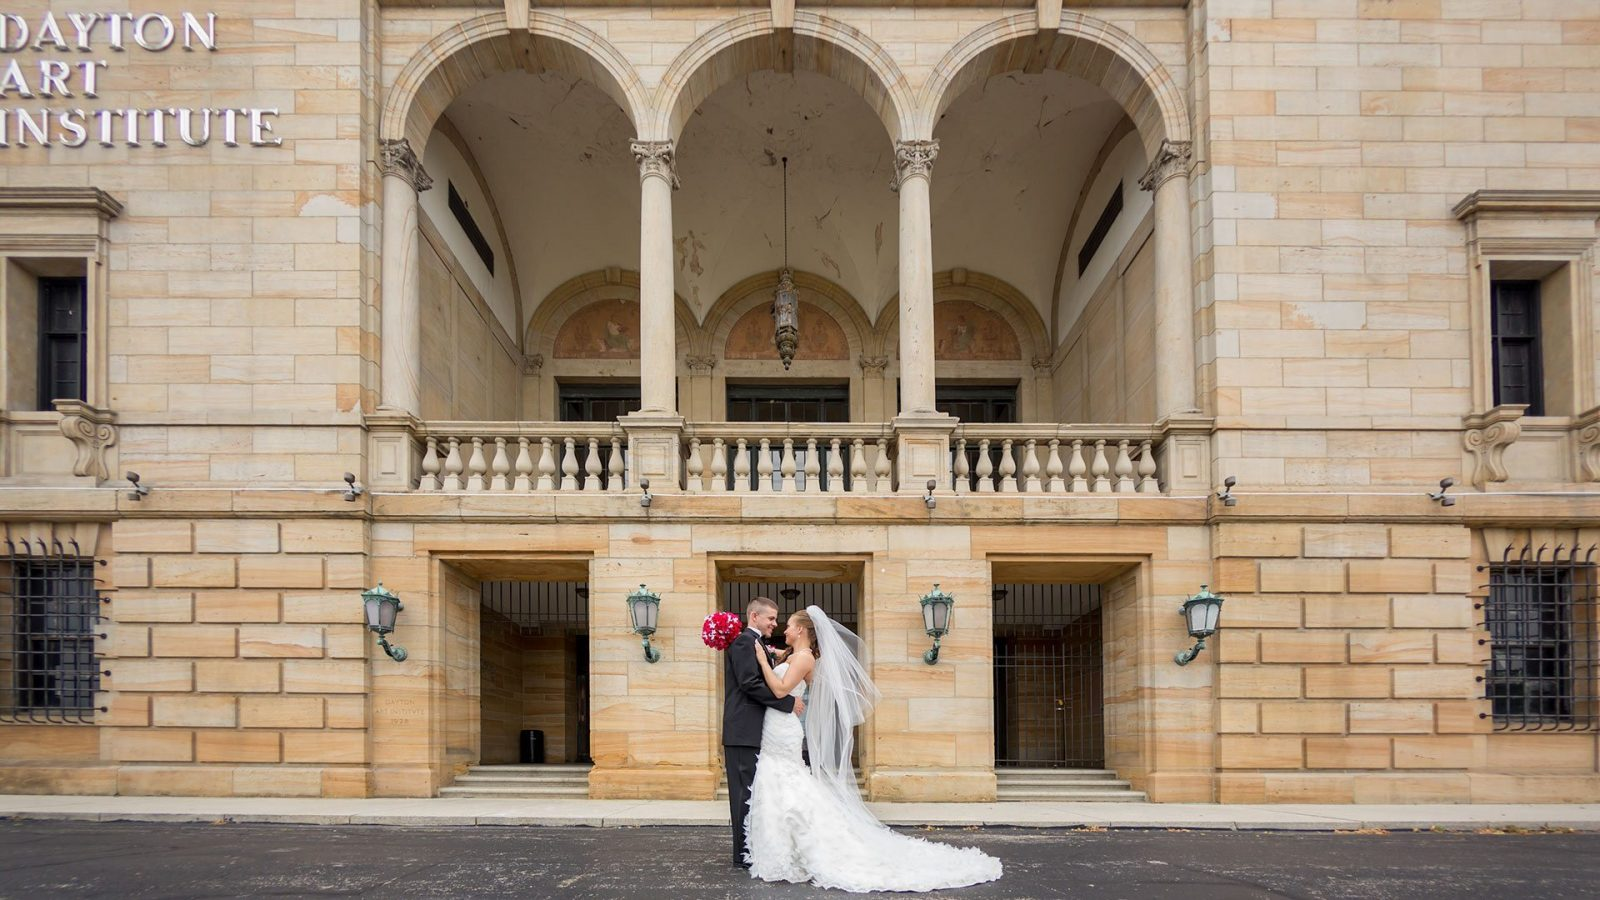 Dayton Art Institute Wedding Photography Top Dayton Wedding Vendors